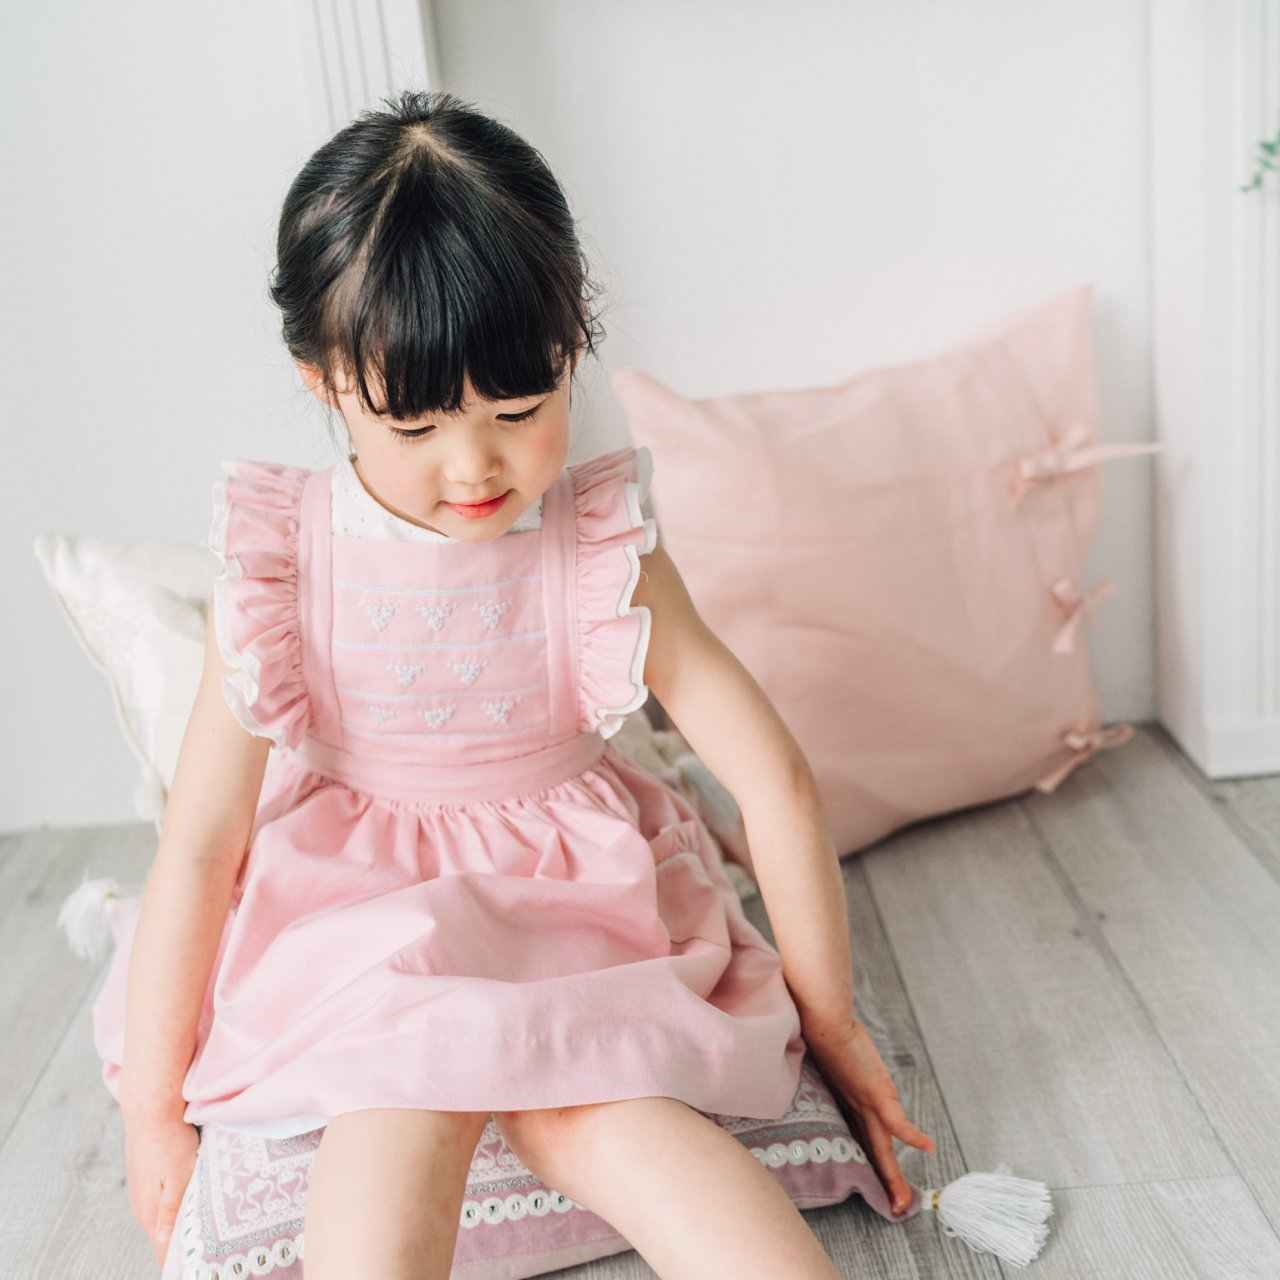 <img class='new_mark_img1' src='https://img.shop-pro.jp/img/new/icons14.gif' style='border:none;display:inline;margin:0px;padding:0px;width:auto;' />Kidiwi - ALIENOR dress (Pink dungaree)